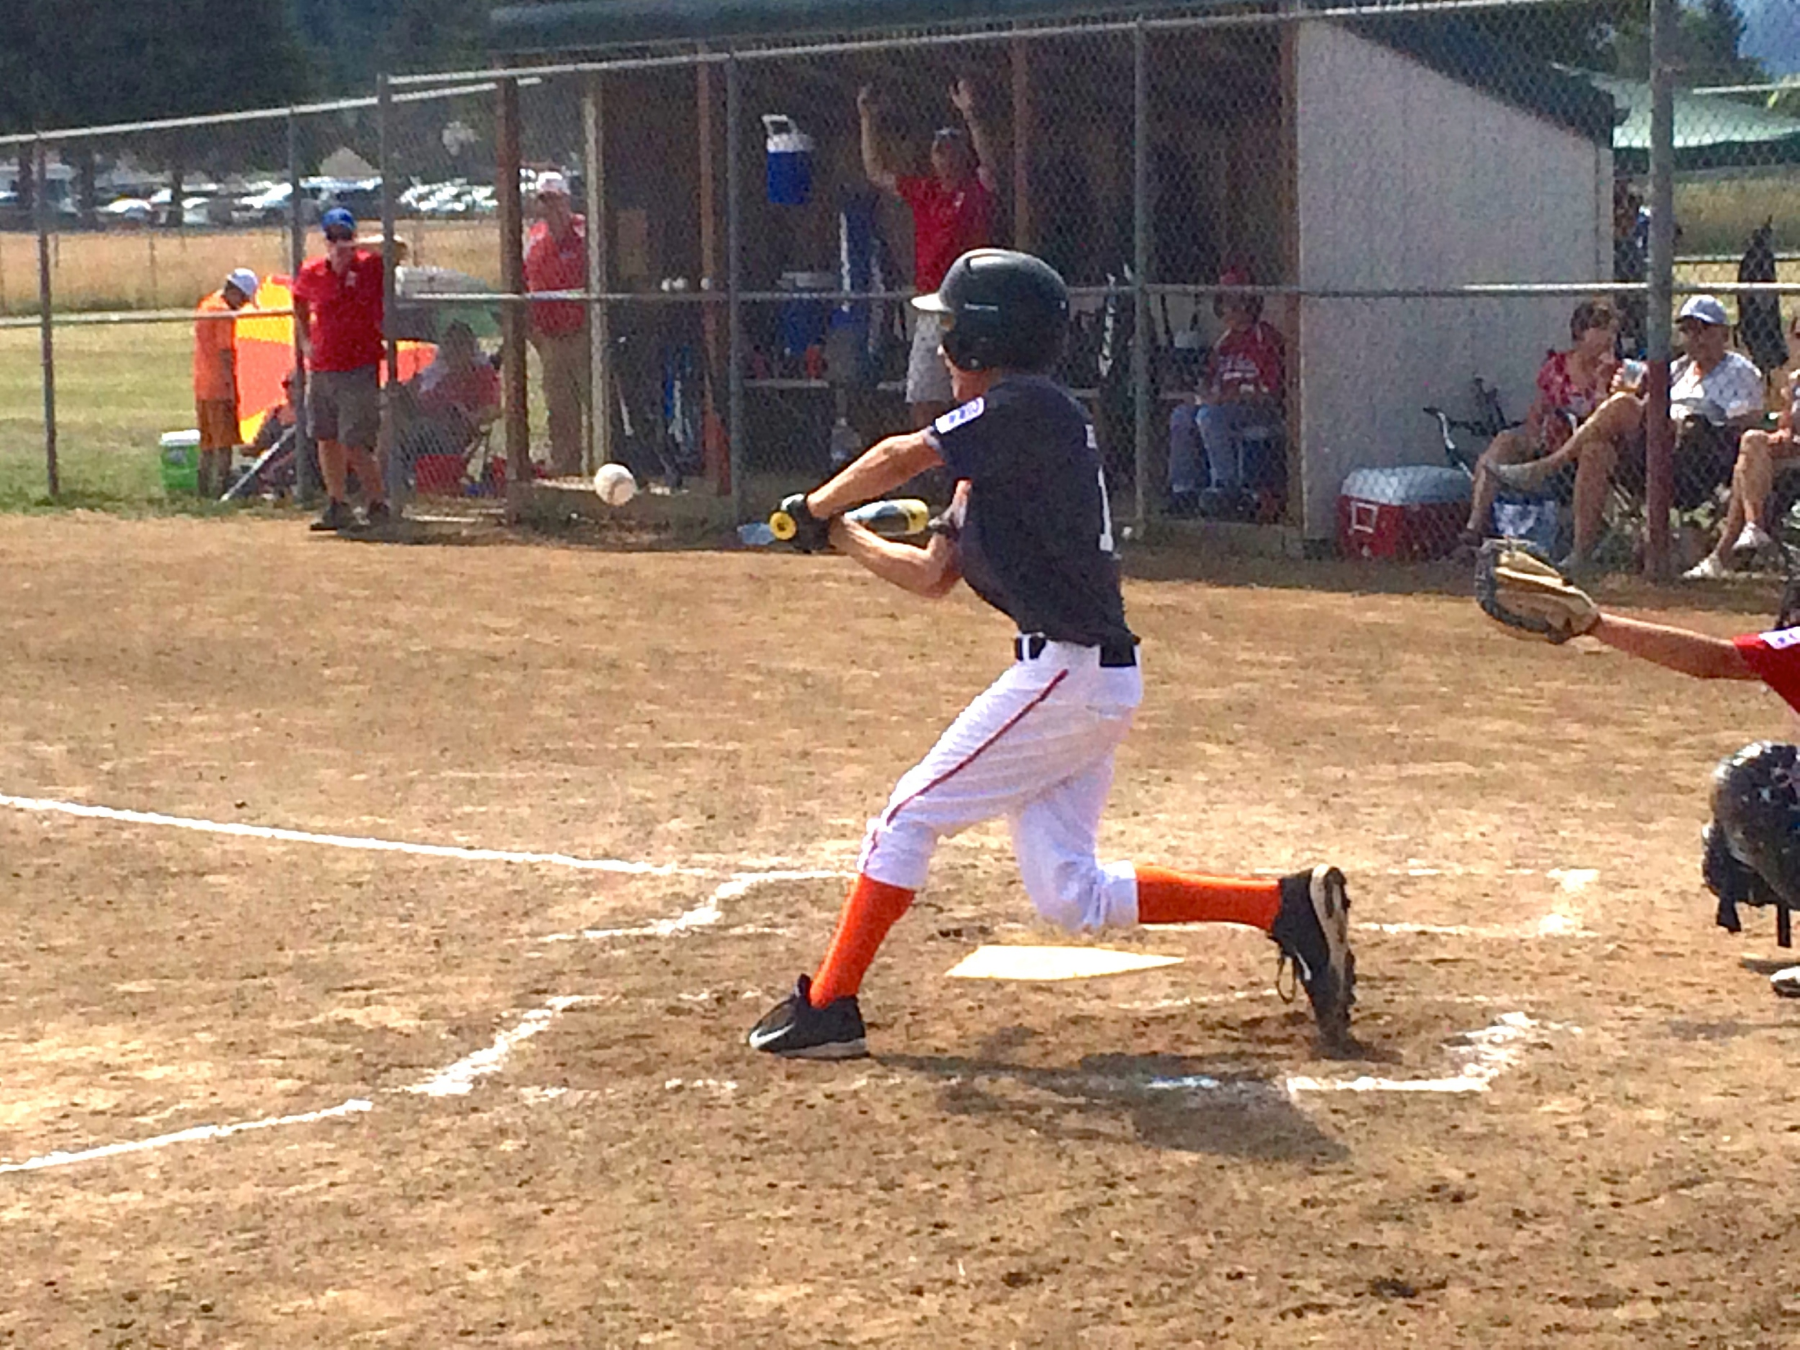 Eli at Bat - This is one of my best action shots. Elihammered it past the centerfielder.